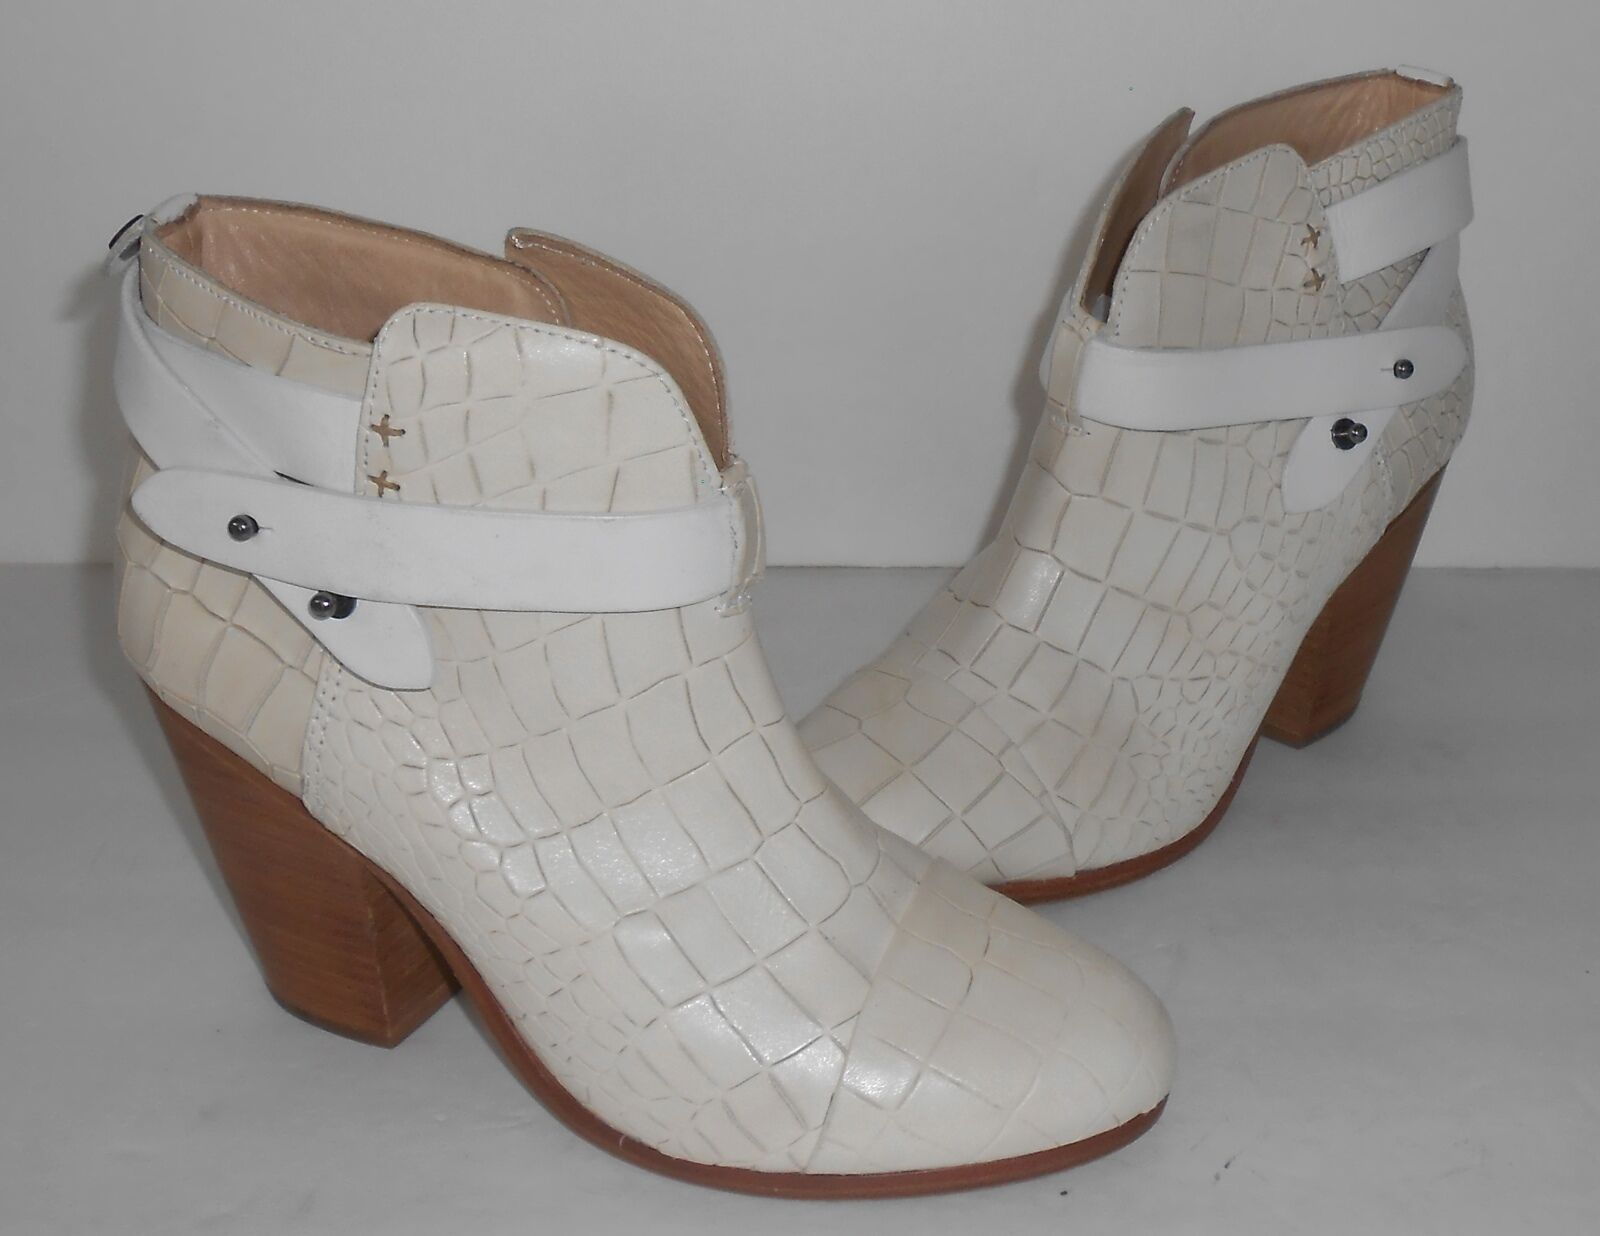 marchio famoso Rag Rag Rag & Bone bianca Harrow Ankle stivali Sz 38  disponibile